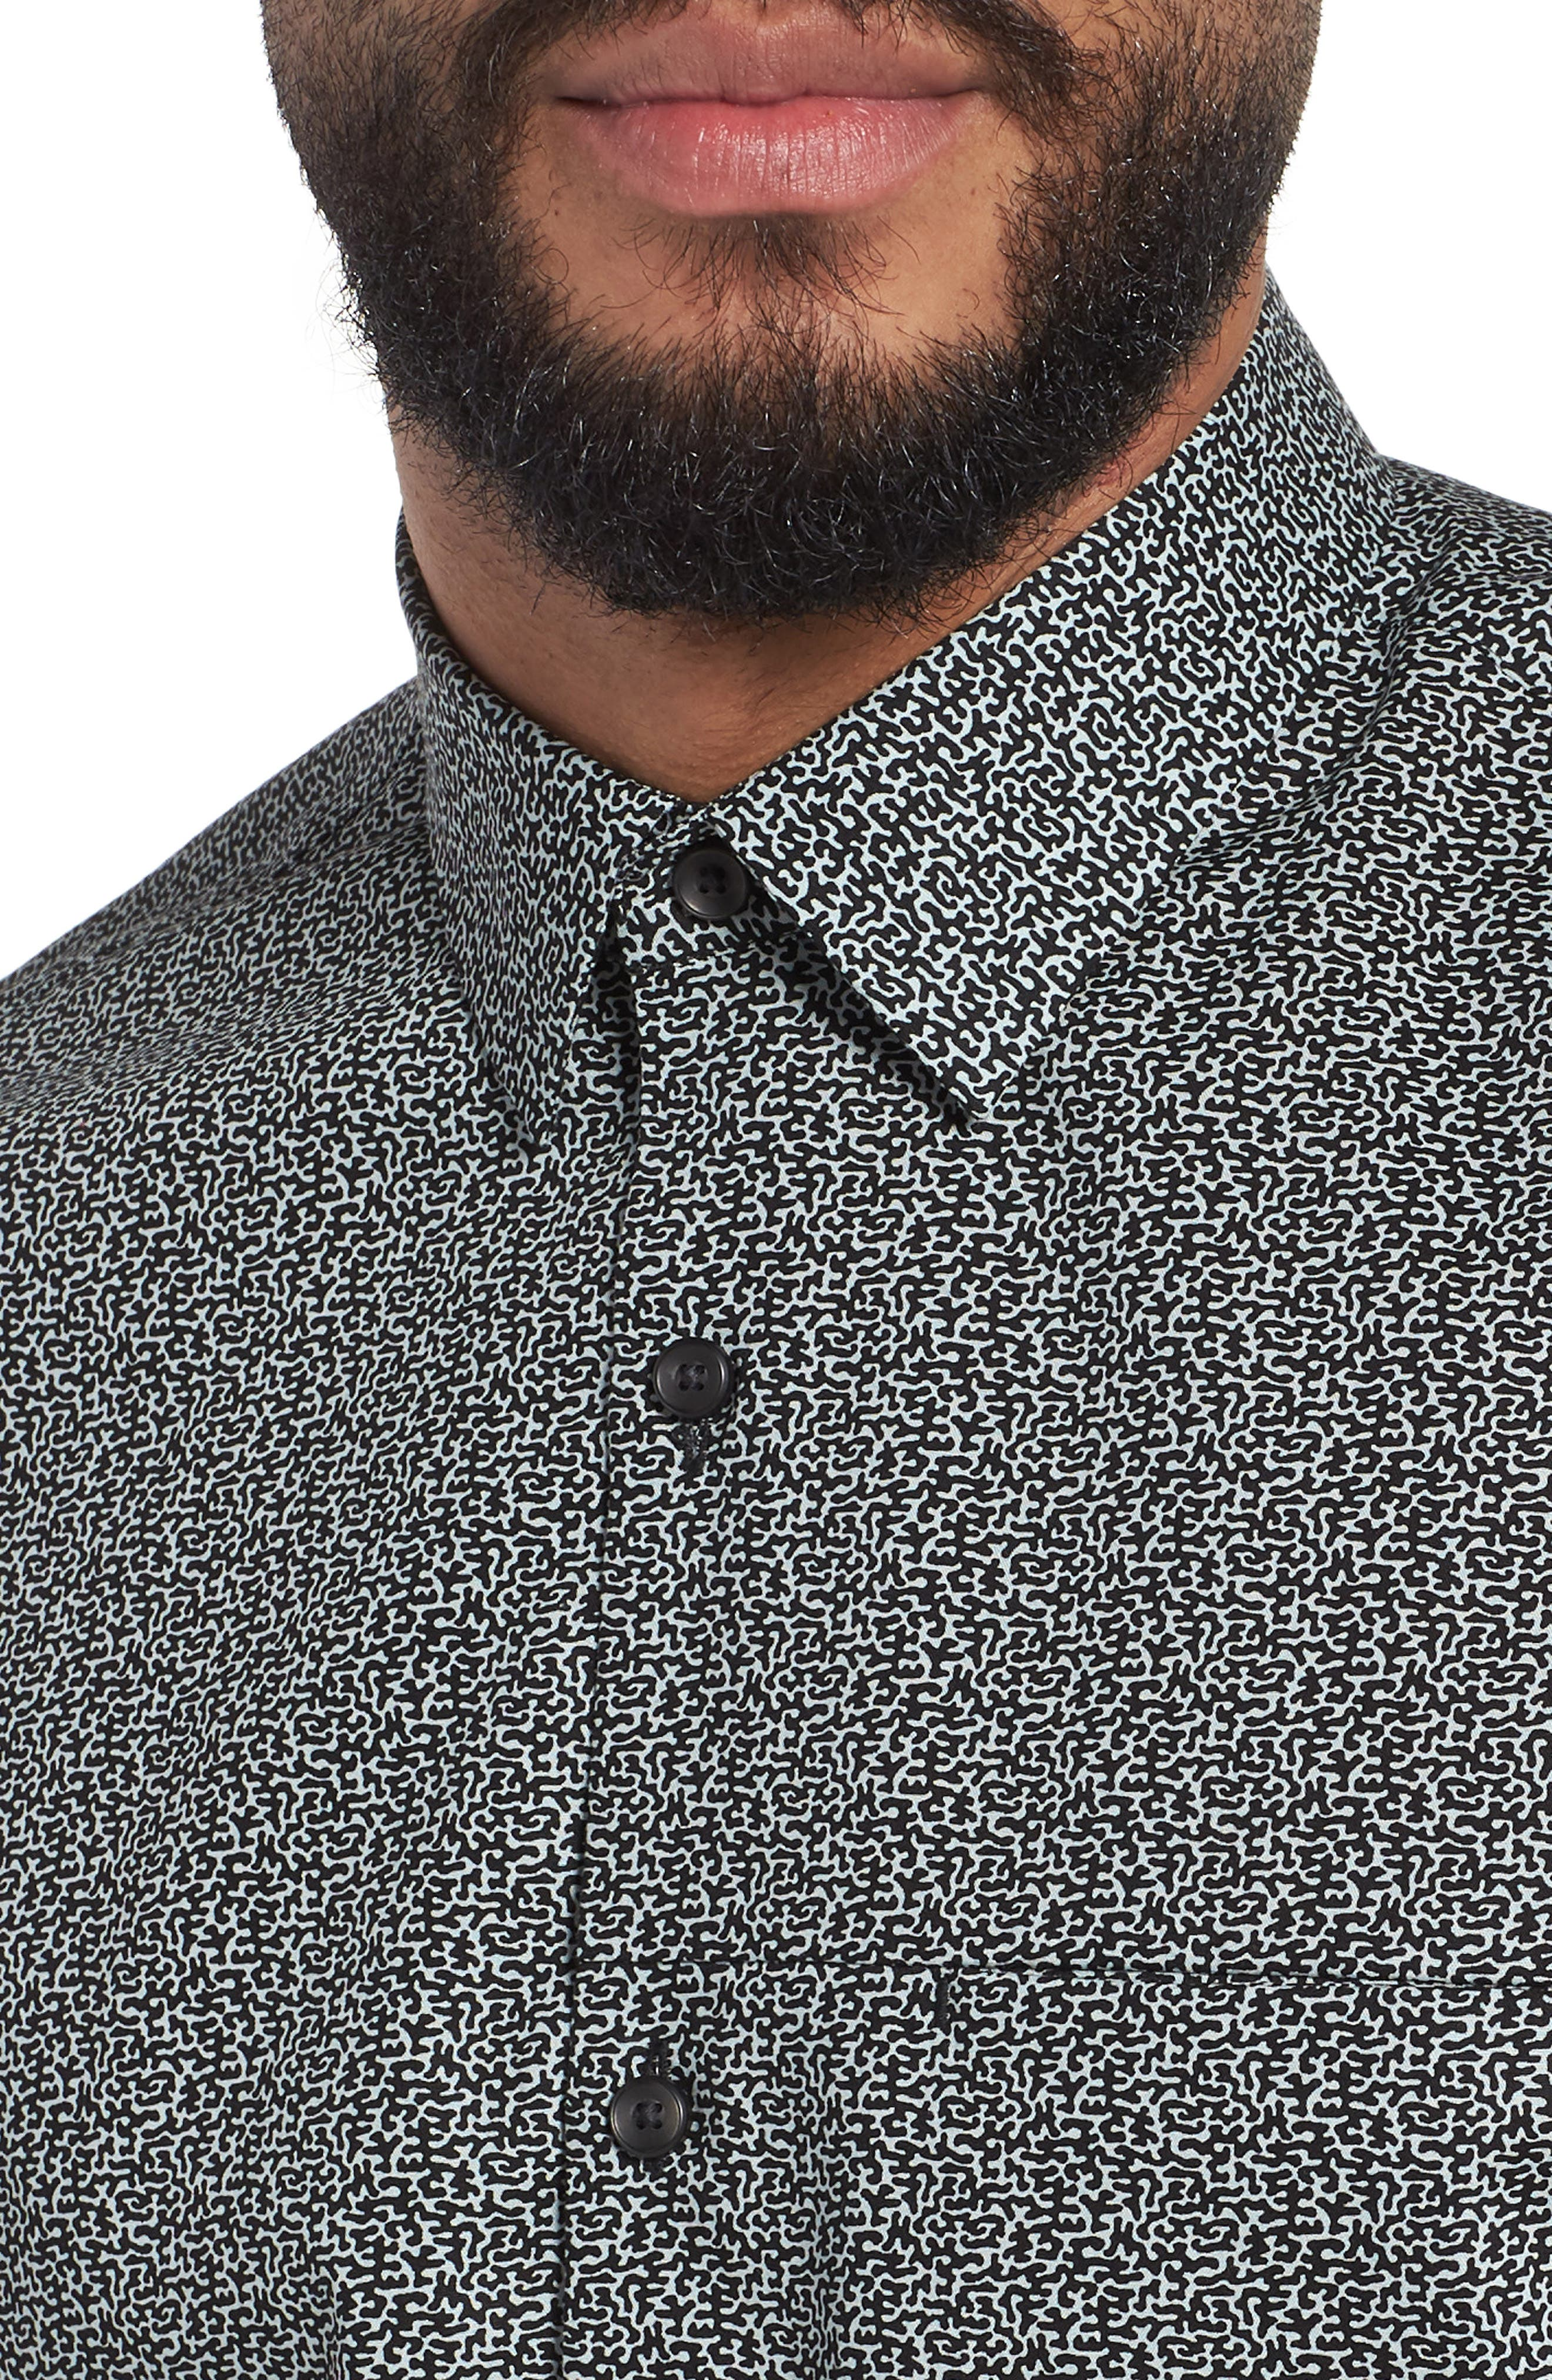 Trim Fit Print Sport Shirt,                             Alternate thumbnail 4, color,                             BLUE CLOUD BLACK ABSTRACT